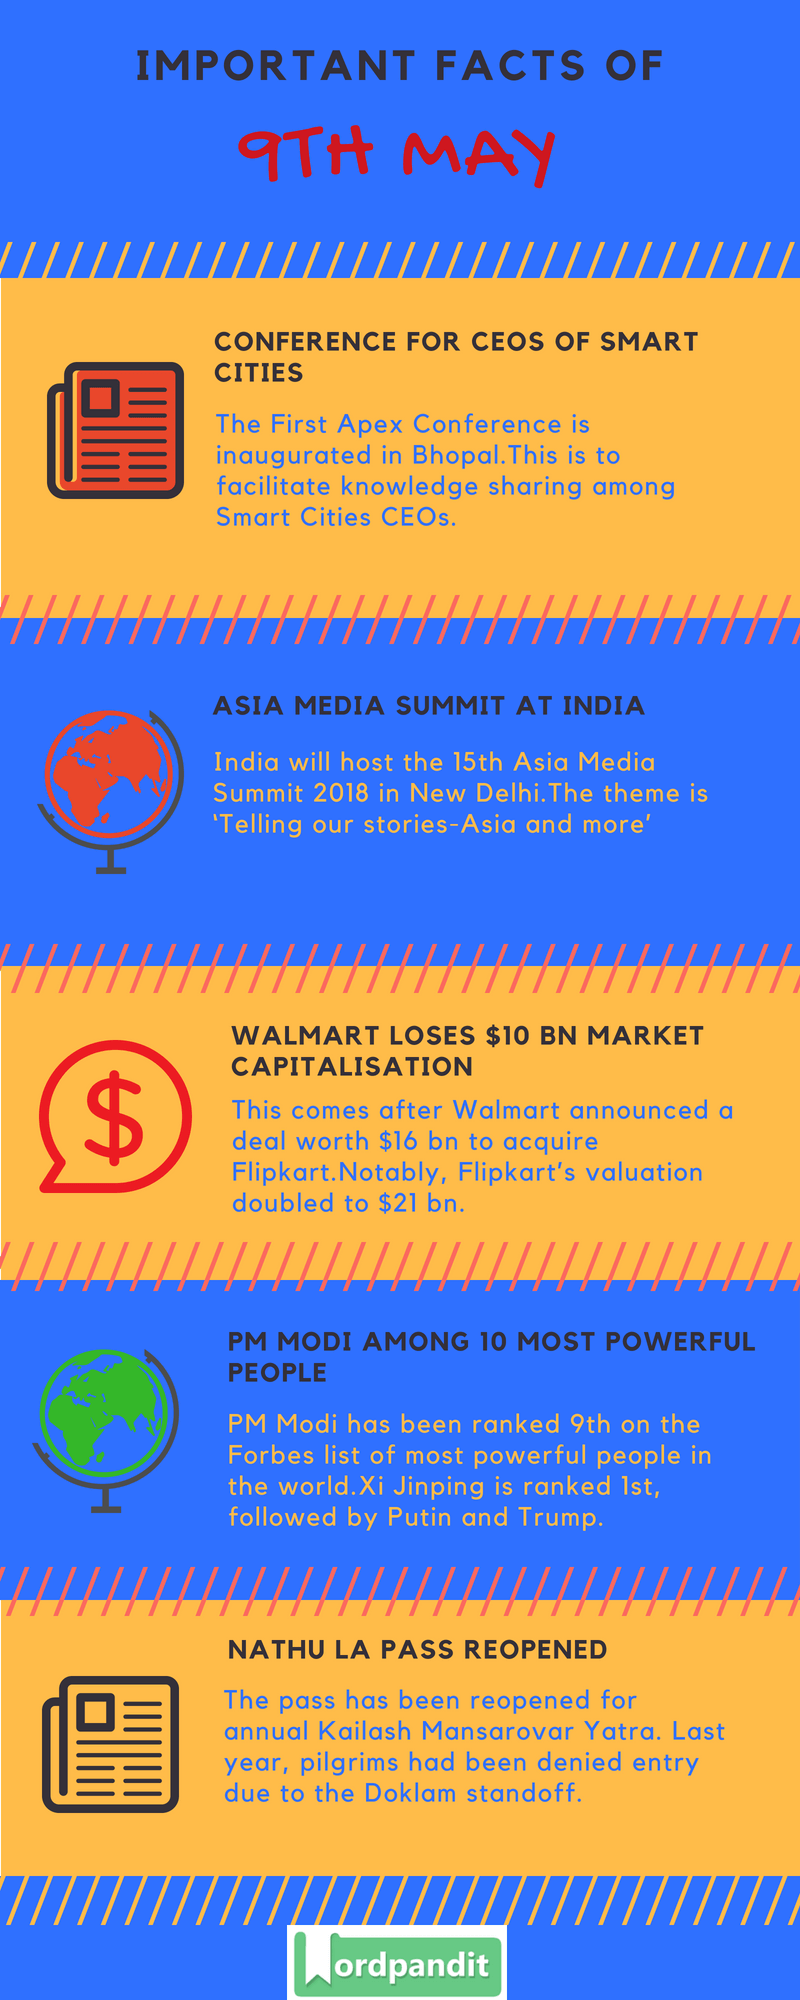 Daily Current Affairs 9 May 2018 Current Affairs Quiz May 9 2018 Current Affairs Infographic